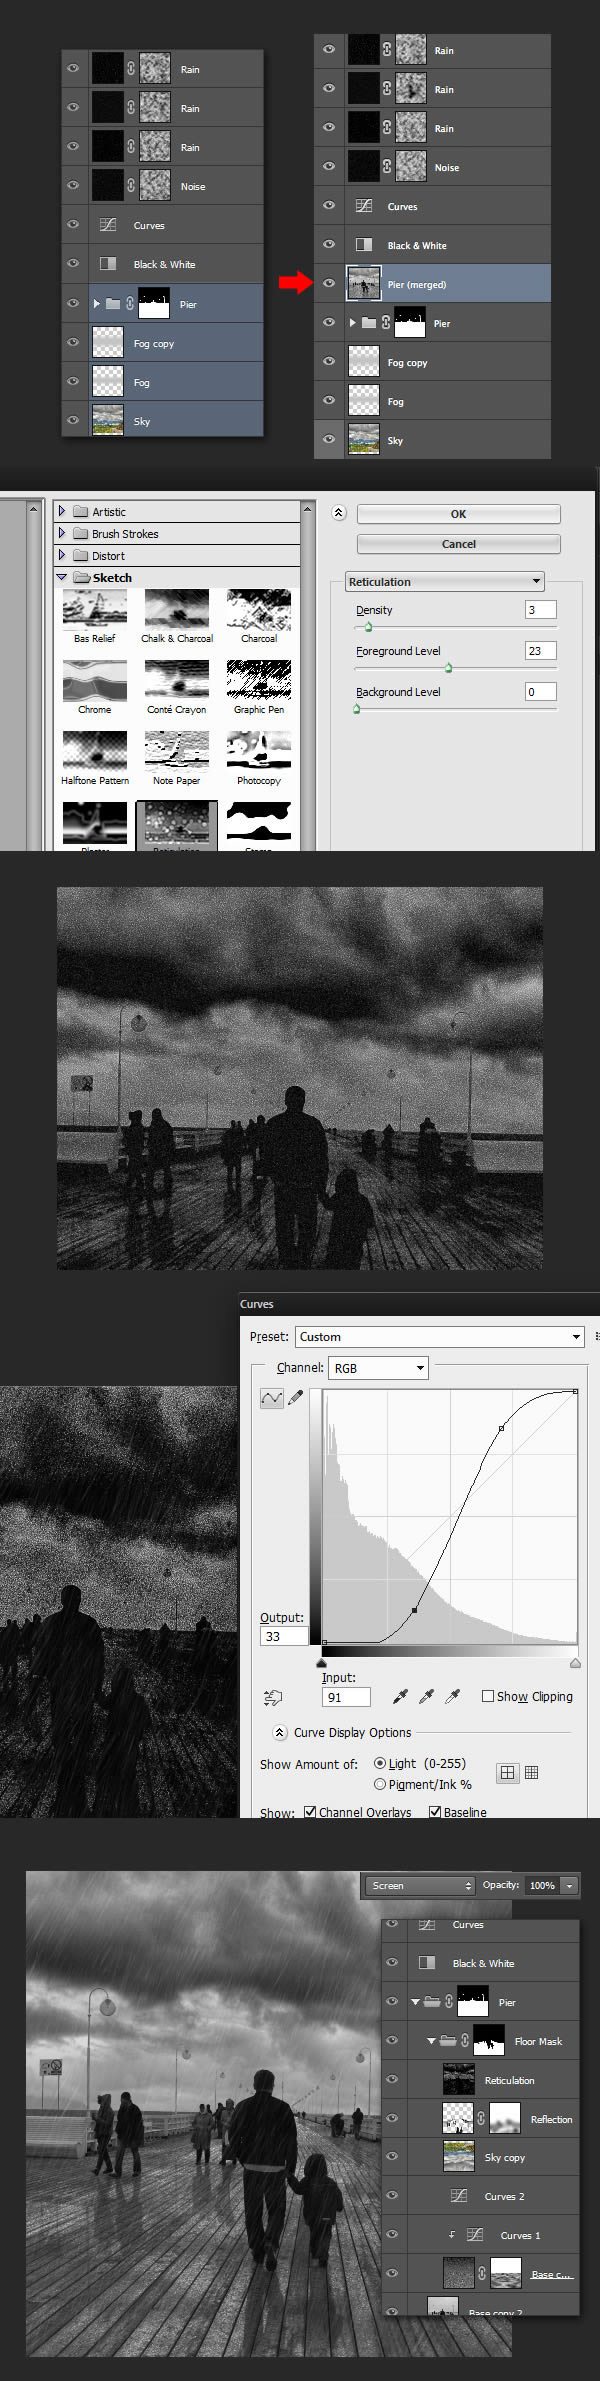 Awesome Hit M To Bring Up Curves Panel Increase A Place Layer Inside Group Andname It Add Dramatic Rain To A Photo Photoshop Unlock Layer Photoshop Keyboard Shortcut Unlock Layer Photoshop Shortcut dpreview Unlock Layer Photoshop